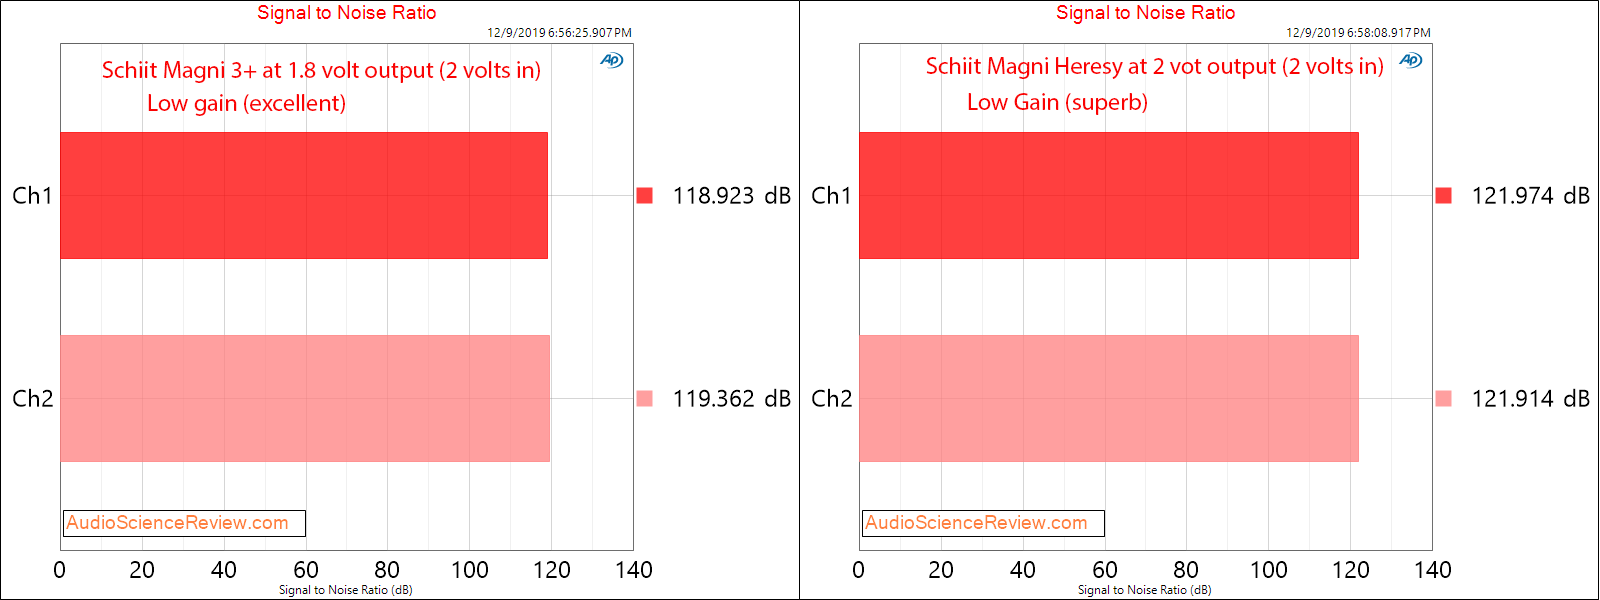 Schiit Magni 3+ and Heresy Headphone Amplifier Comparison Dynamic Range Measurements.png